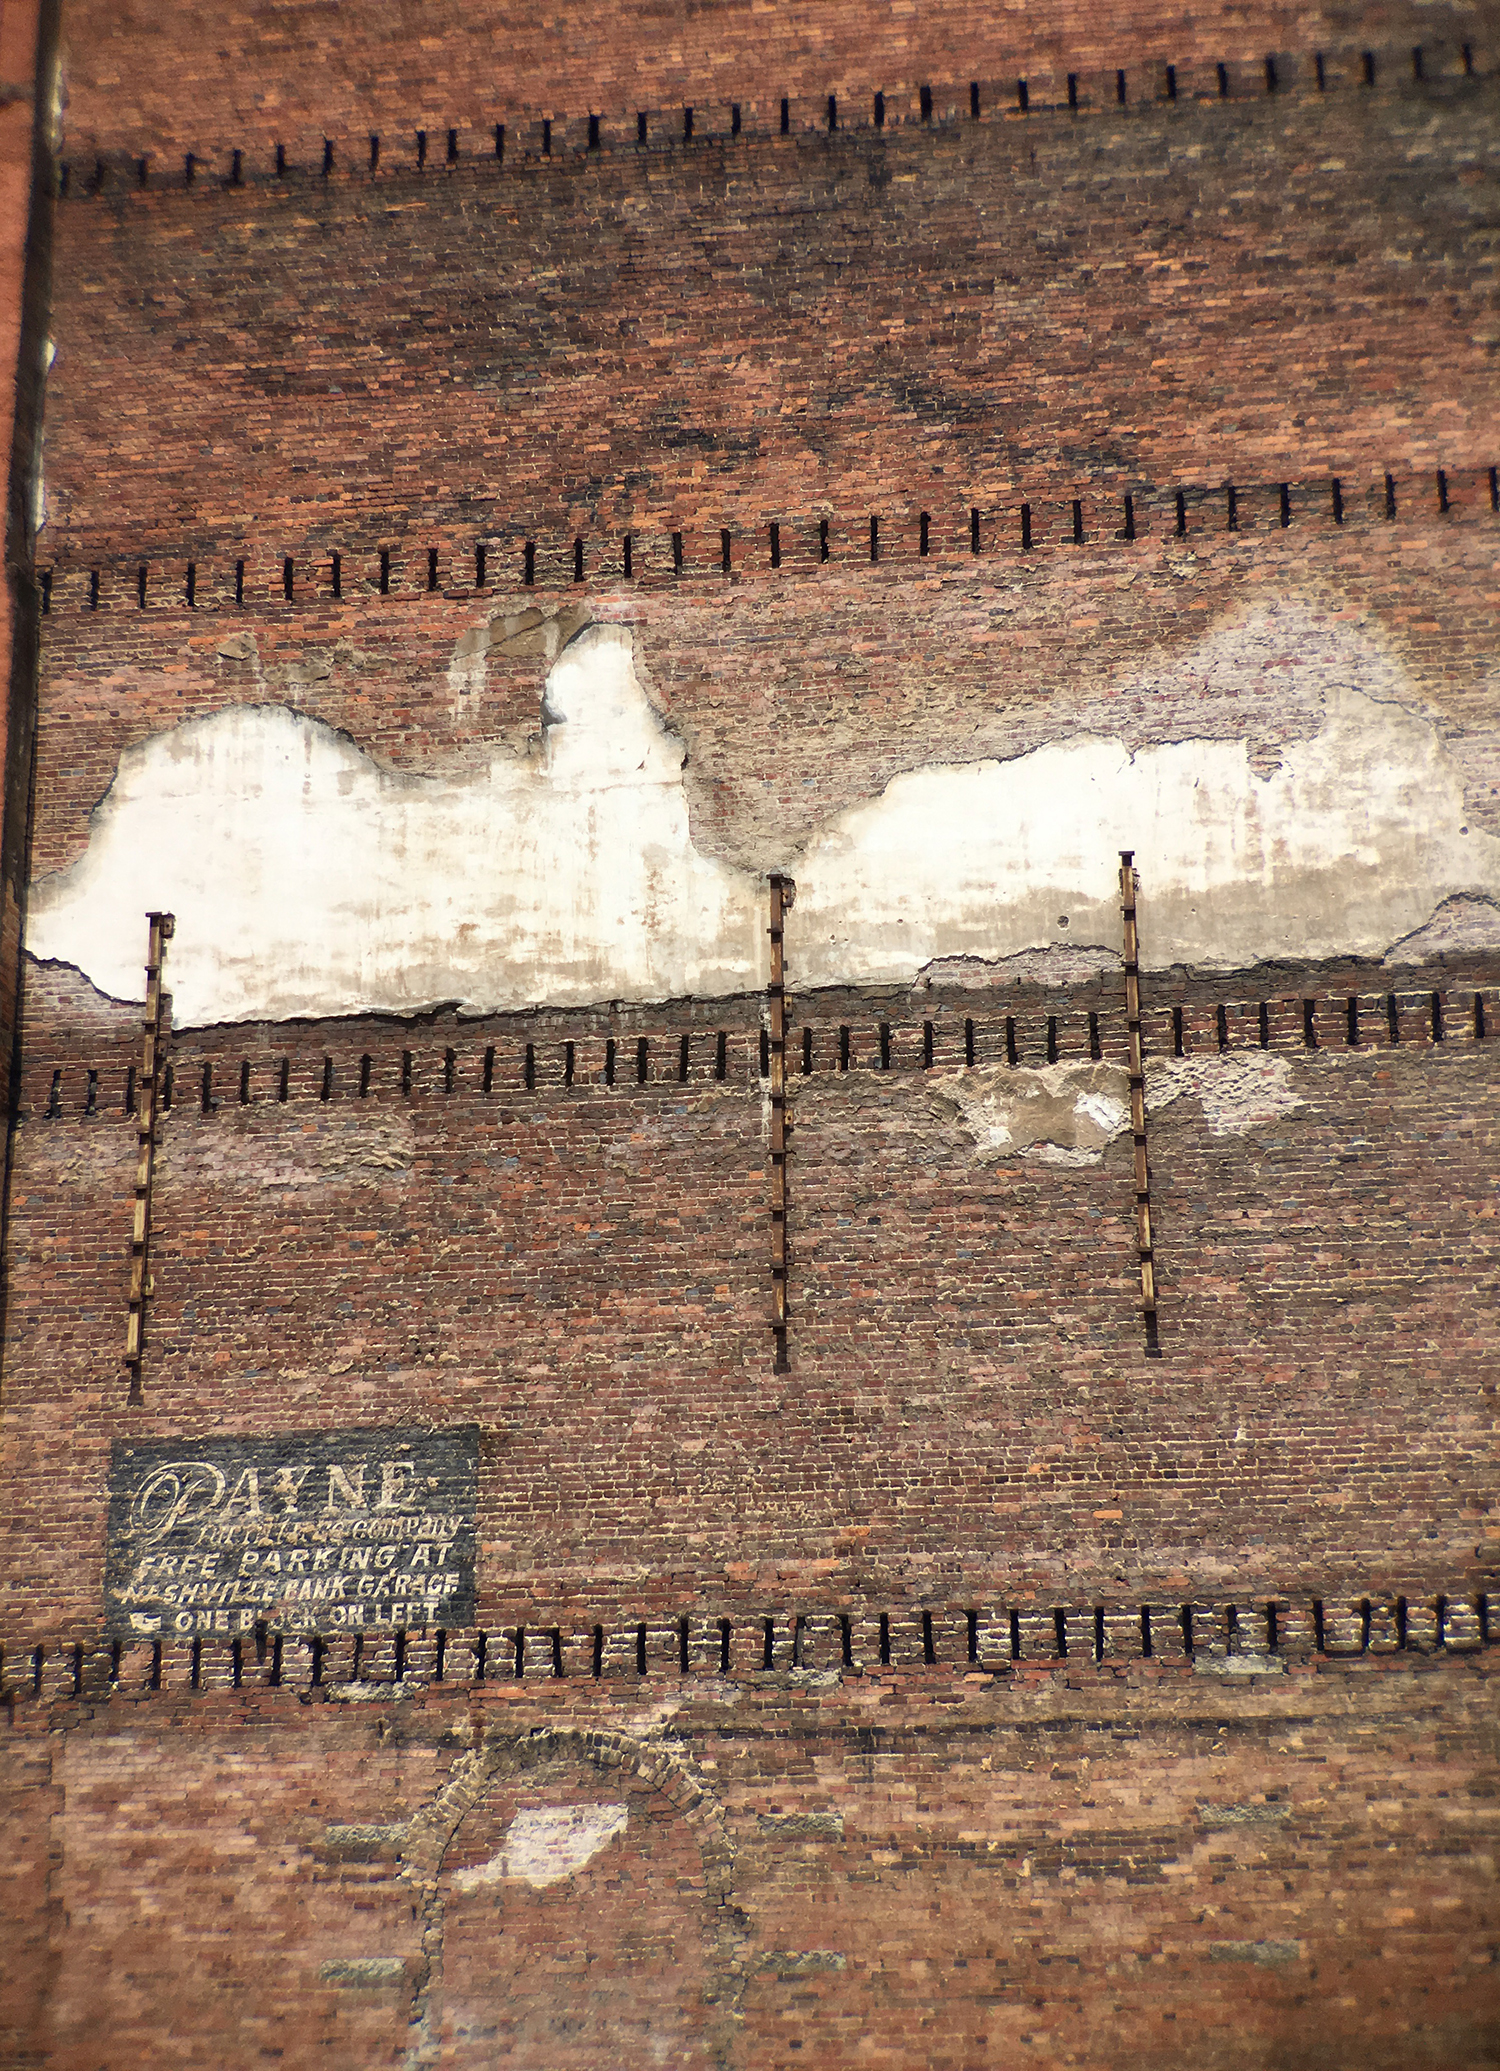 This is my continual inspiration—peeling walls, exposed brick, urban decay.